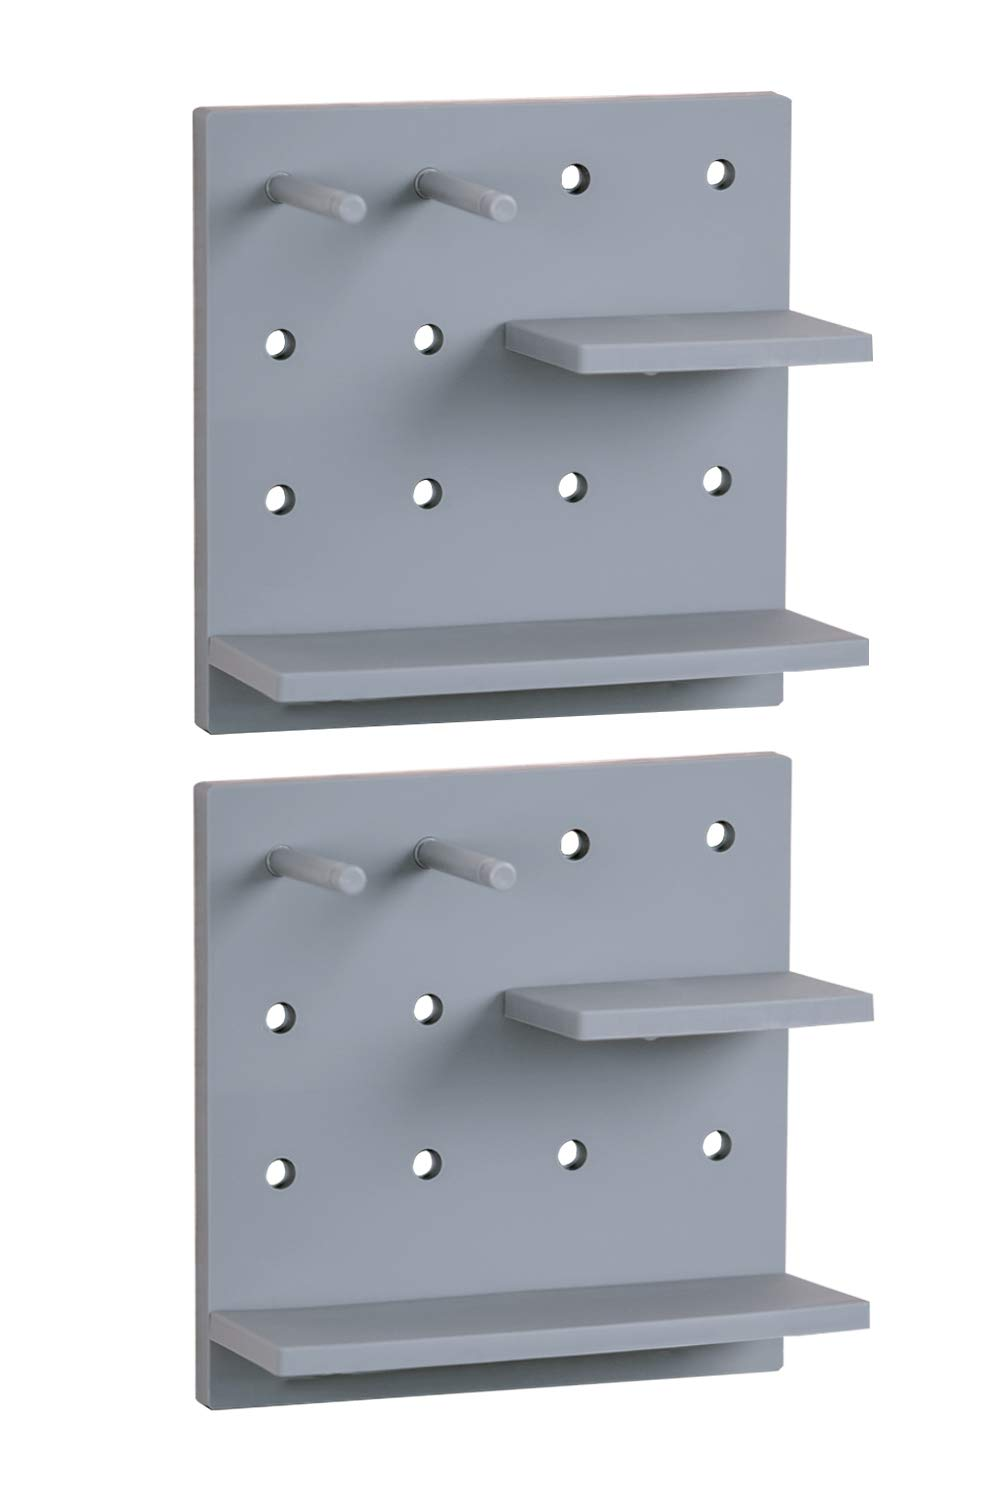 Letjolt New Pegboard for Living Room Wall Decor Ideas, Board Storage with Shelf and Hook for Bathroom and Kitchen, Rack for Keys, Cellphone, Pot Plant, Photo Frame, Toothbrush, Soap(Gray Set of 2)